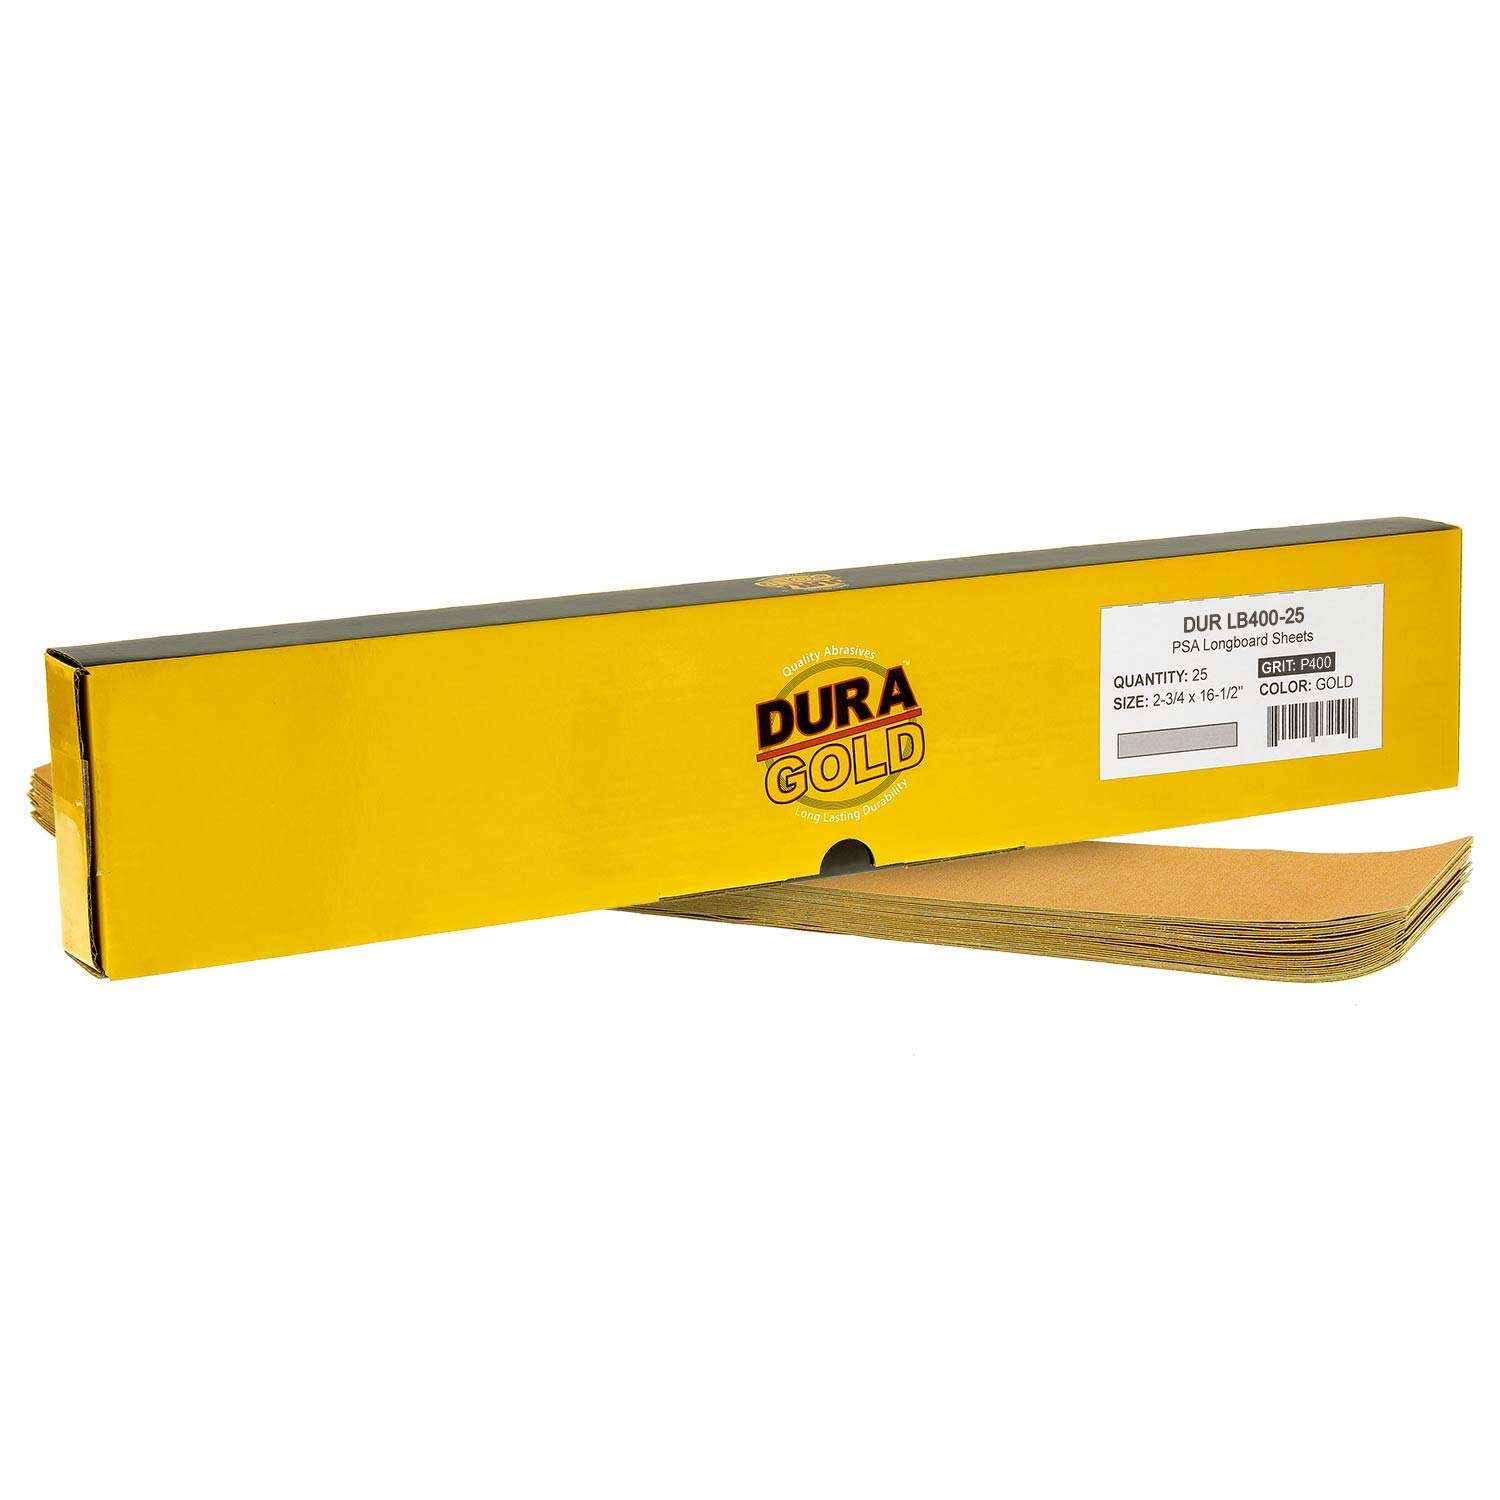 Dura-Gold - Premium - 400 Grit Gold - Pre-Cut Longboard Sheets 2-3/4'' wide by 16-1/2'' long - PSA Self Adhesive Stickyback Longboard Sandpaper - Box of 25 Sandpaper Finishing Sheets by Dura-Gold